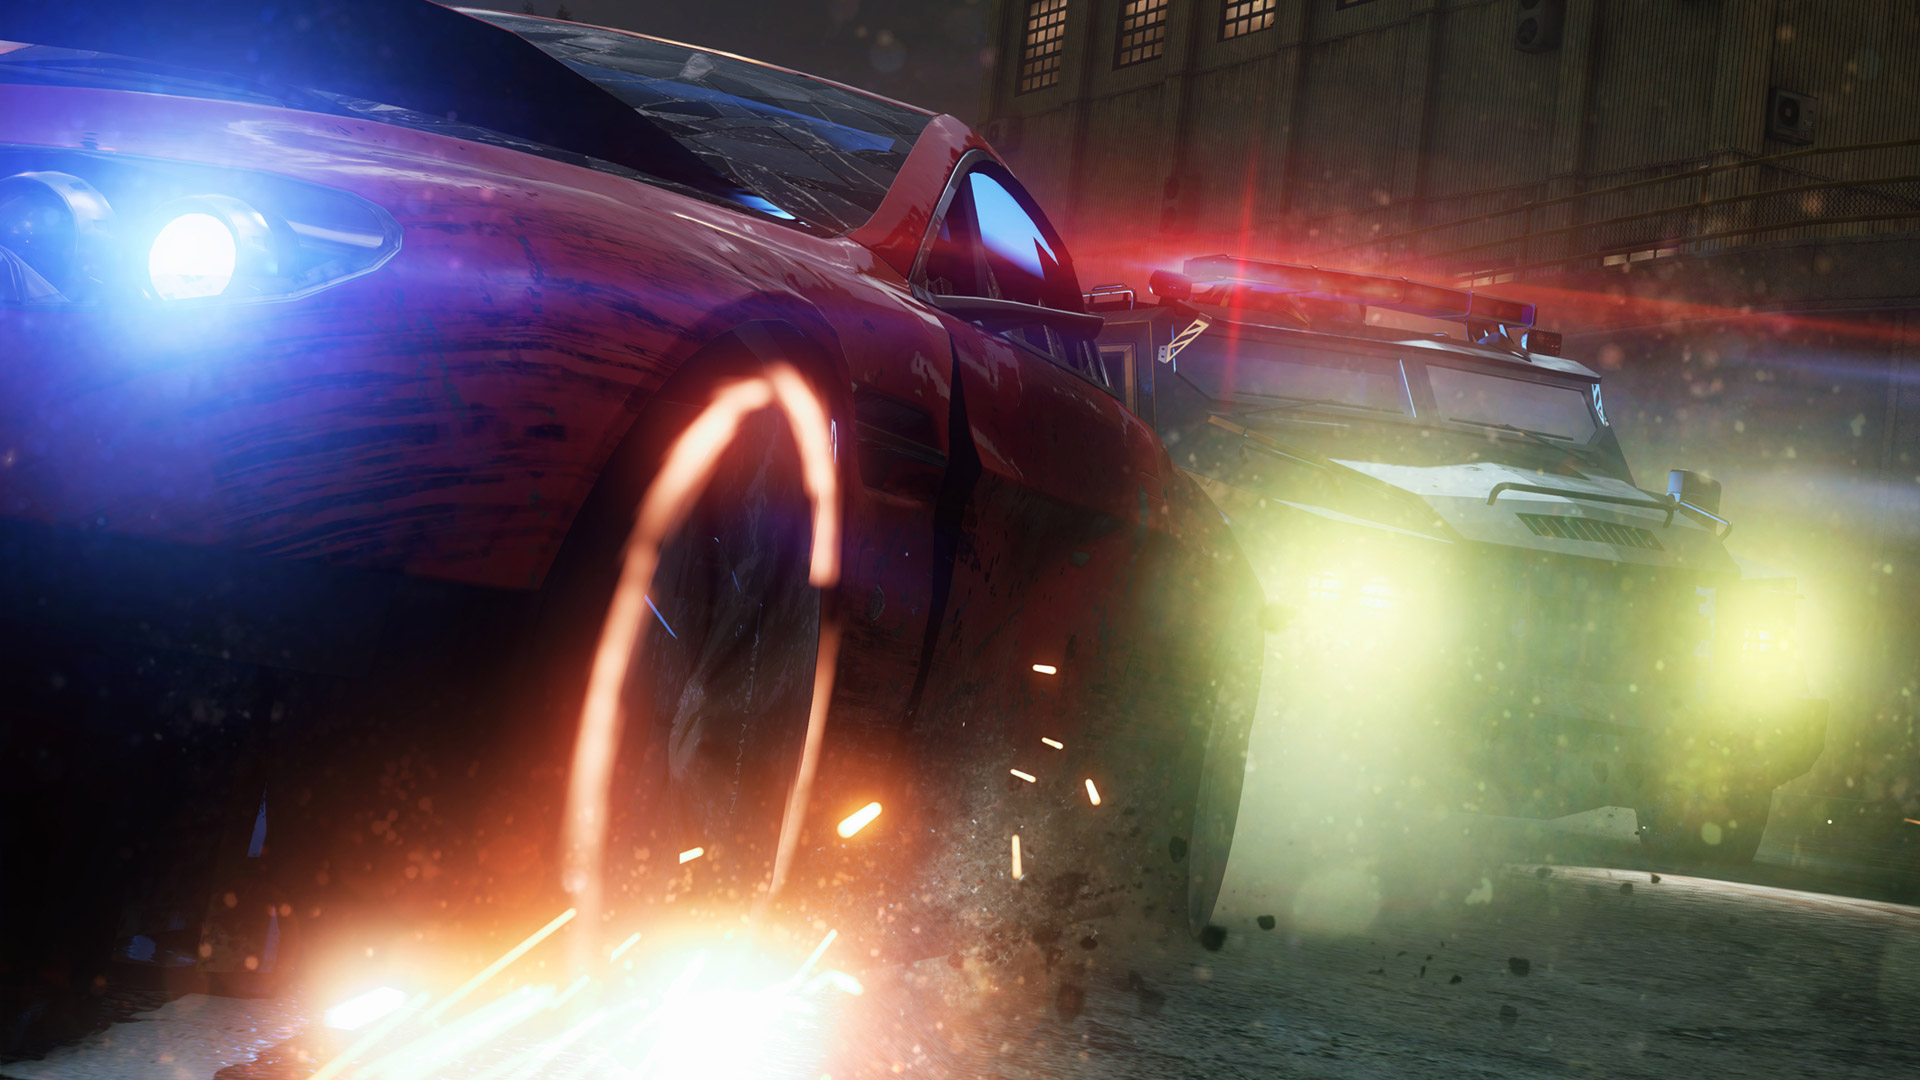 Need for Speed: Most Wanted (2012) Wallpaper in 1920x1080